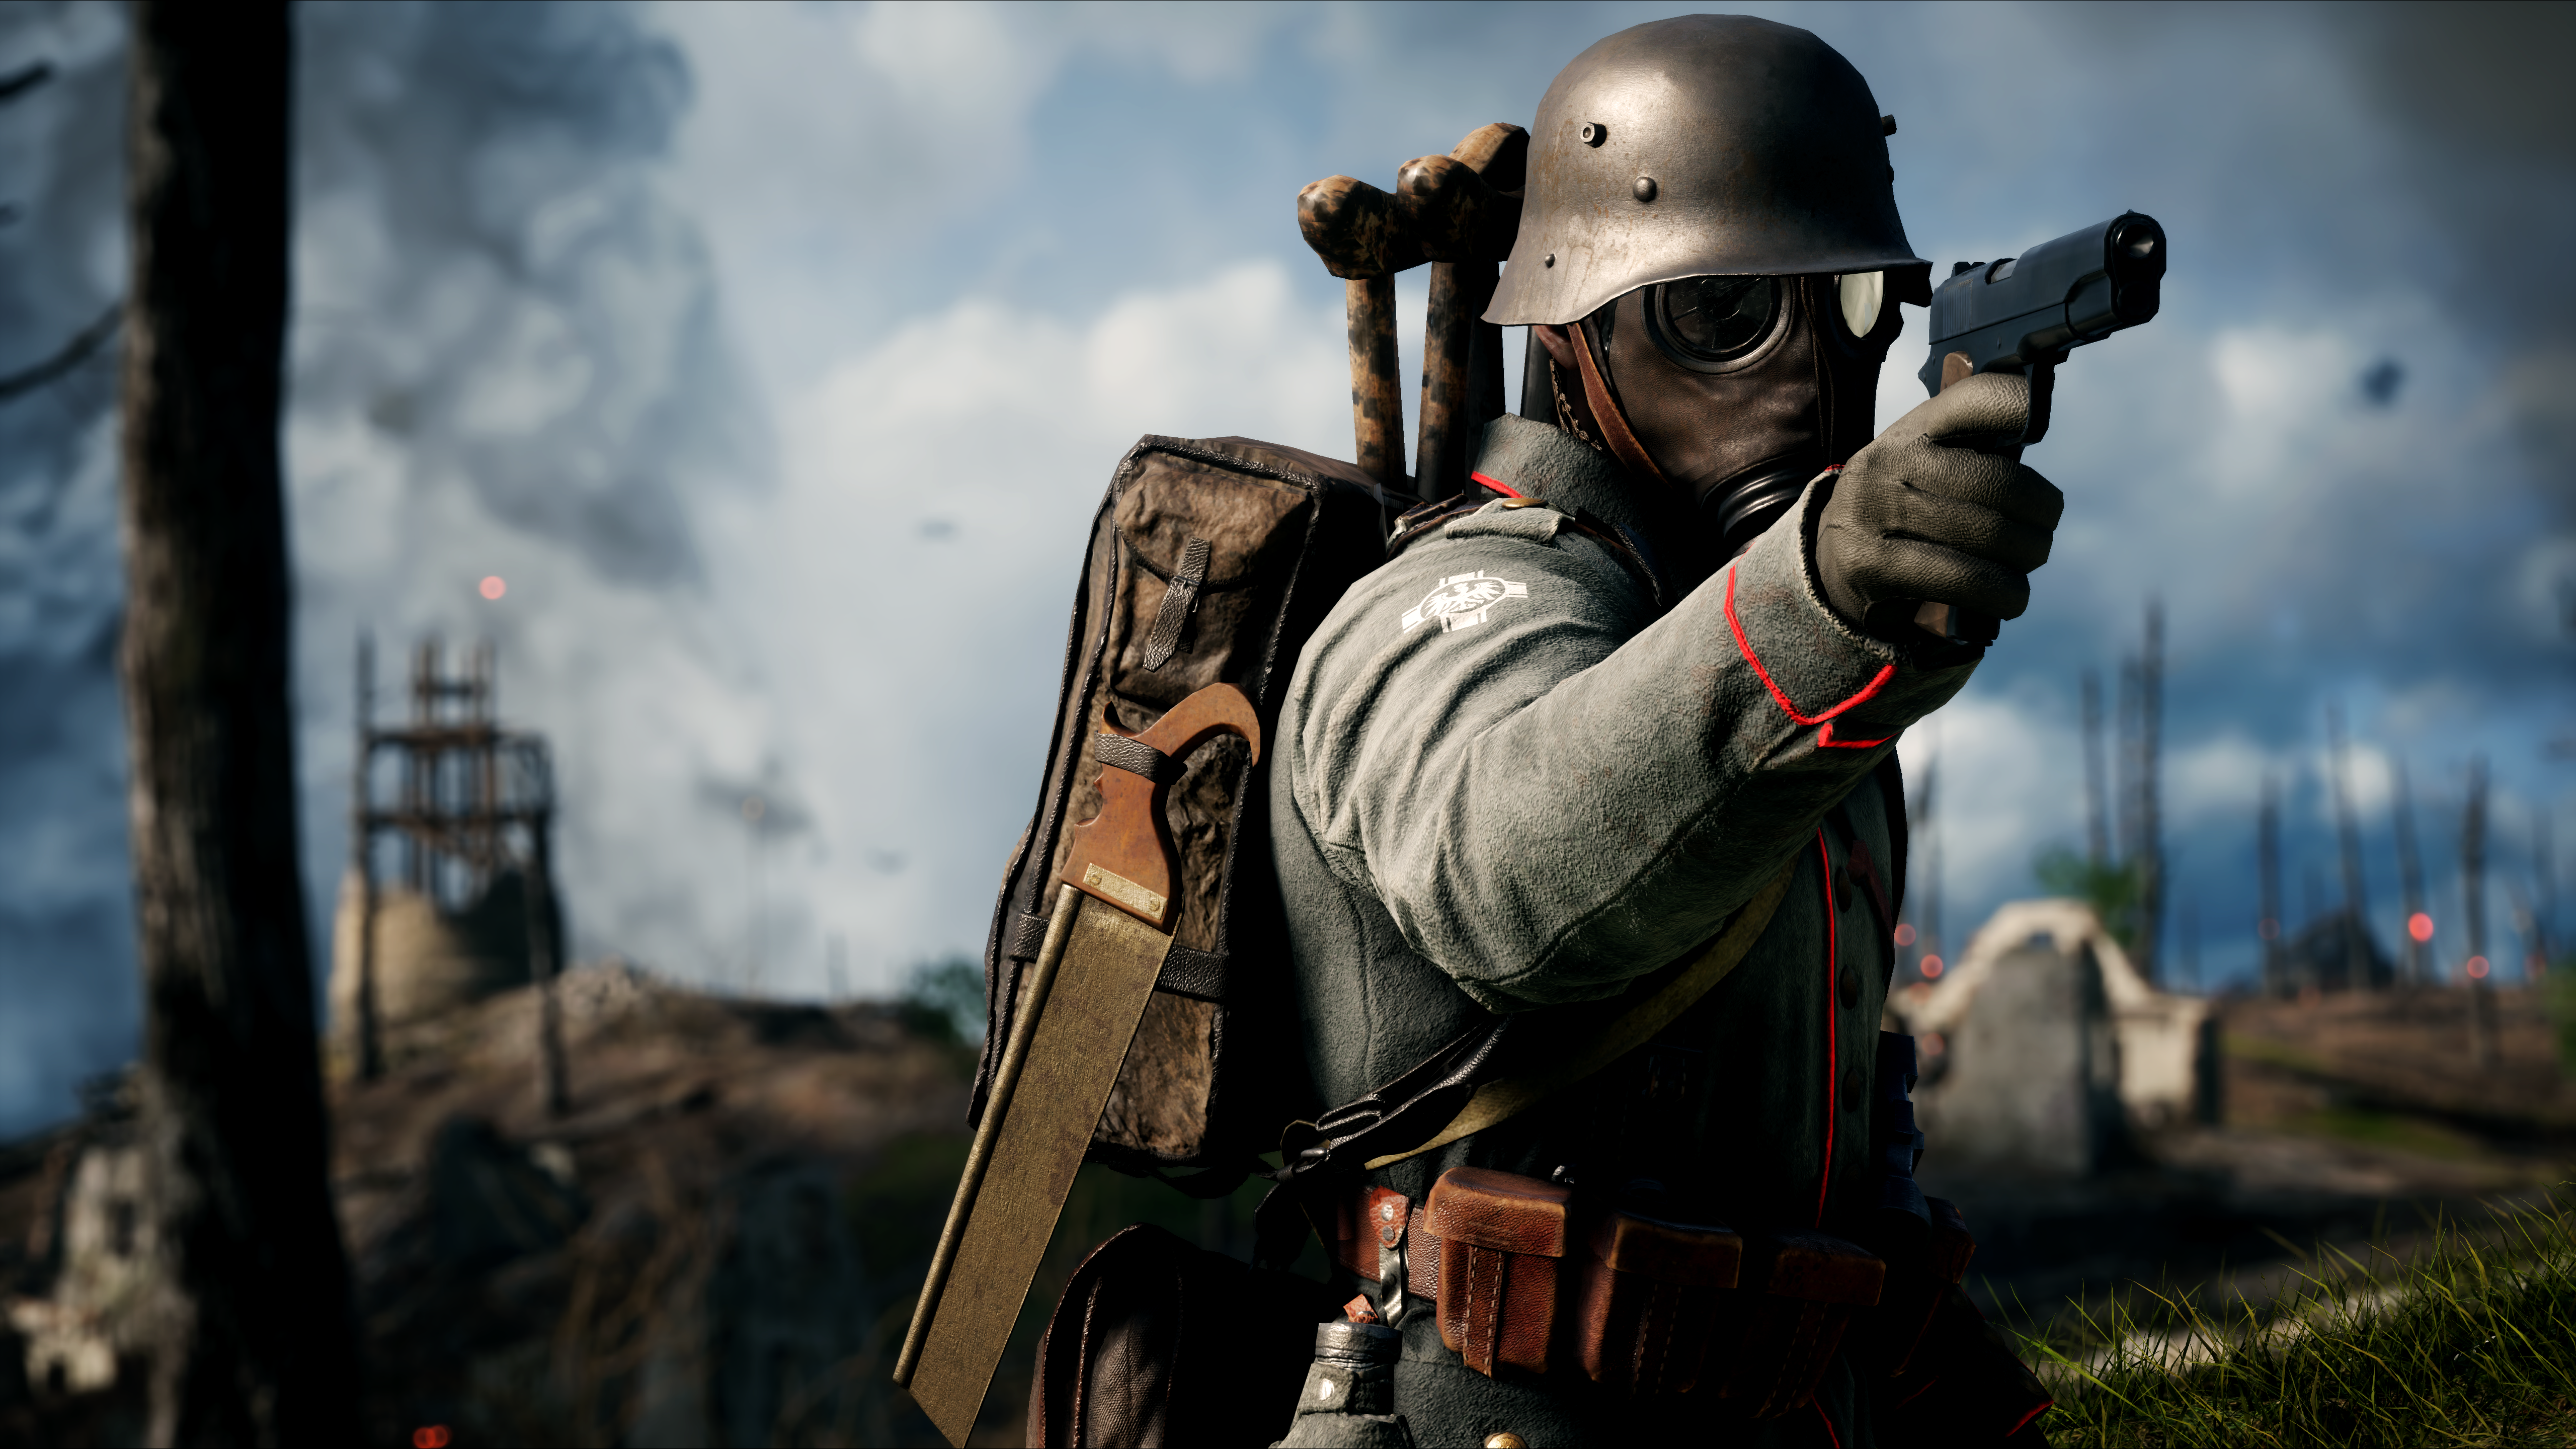 Battlefield 1 Wallpapers, Pictures, Images.